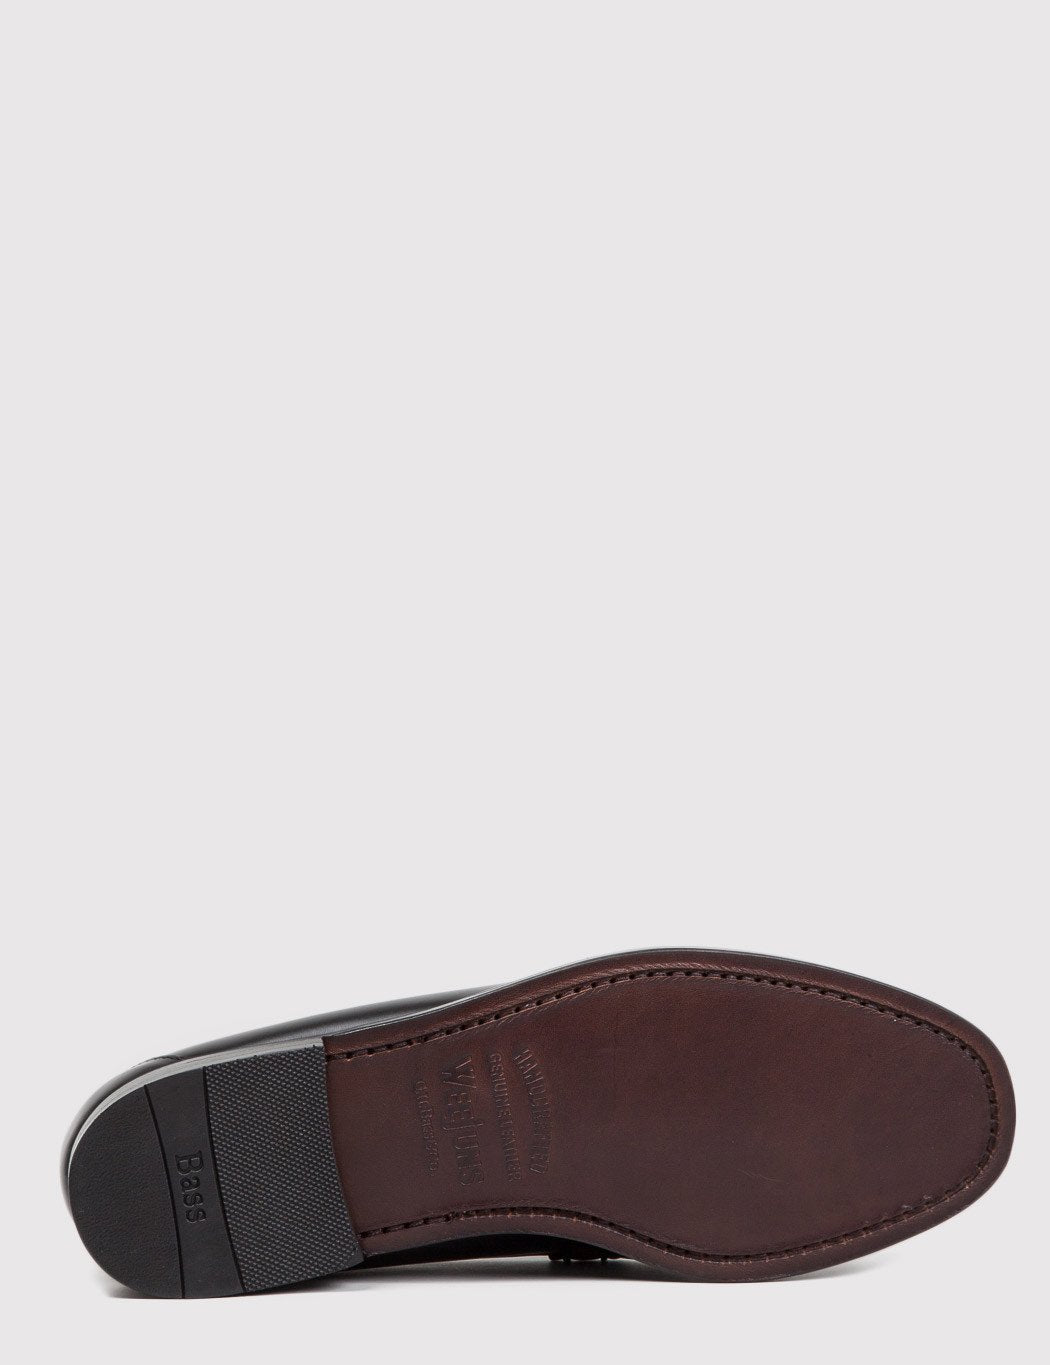 Bass Weejun Larson Penny Loafers - Black Leather